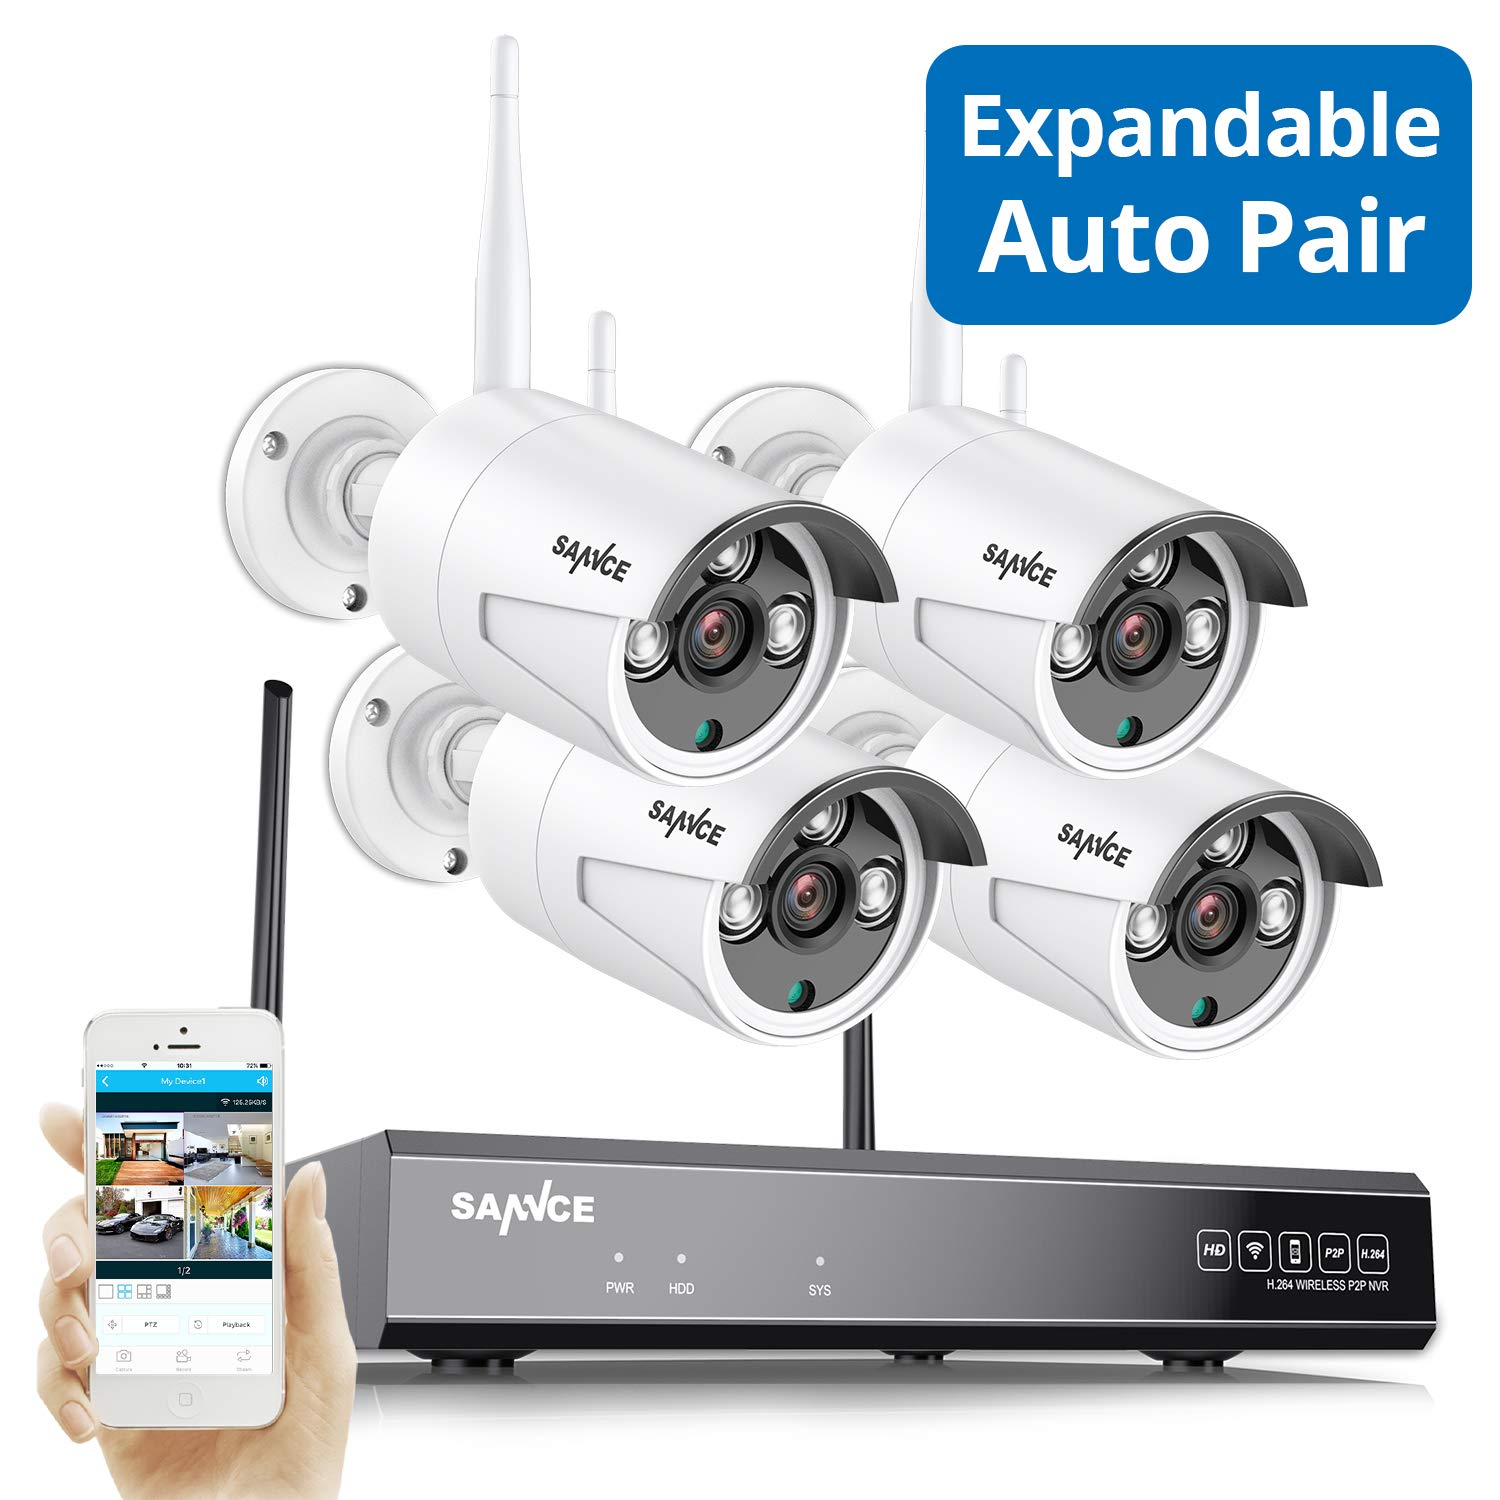 Update Expandable Wireless Security Camera System, SANNCE 1080P 8CH NVR and 4 pcs 960P IP66 Weatherproof Surveillance Cameras,Indoor/Outdoor with 100FT Night Vision, NO HDD Included